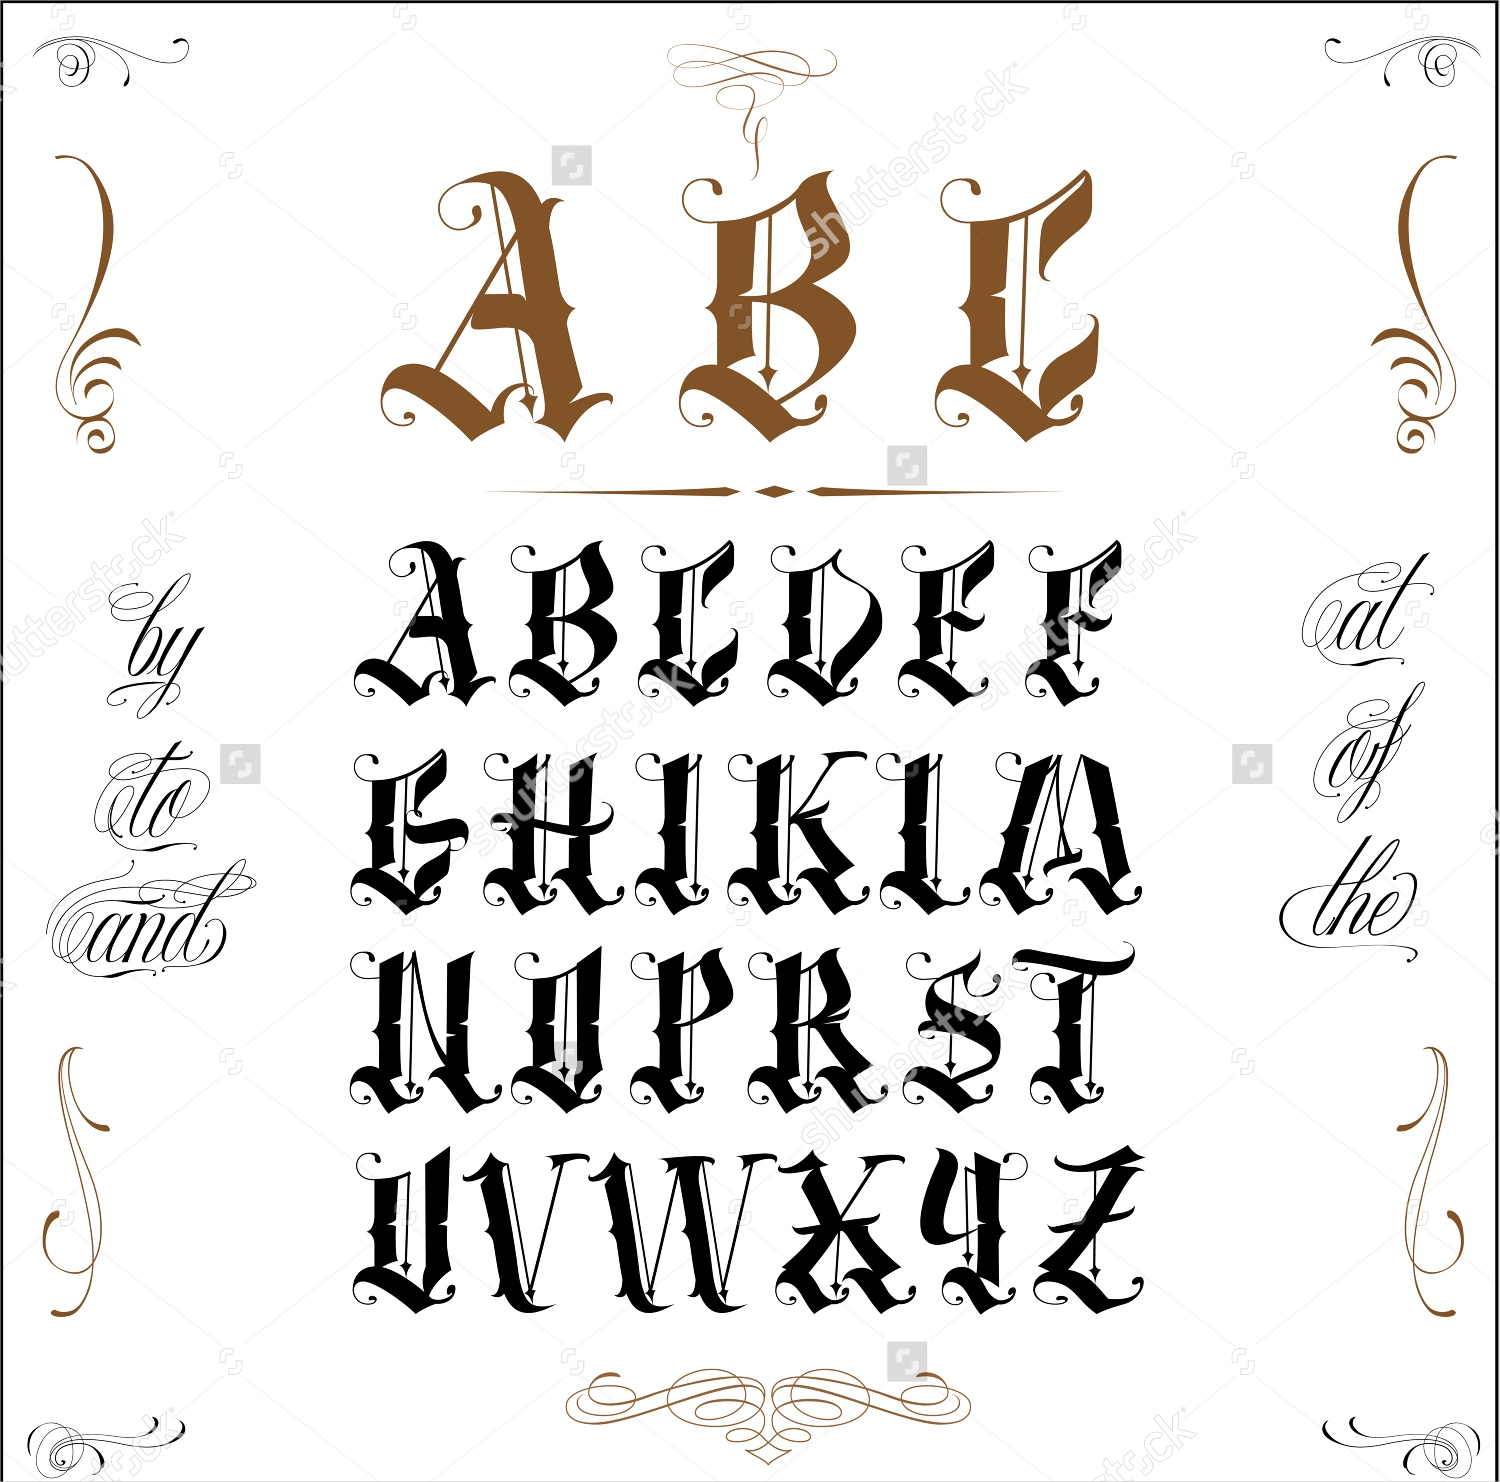 Tattoo Fonts: 10+ Old English Fonts - TTF, OTF Format Download